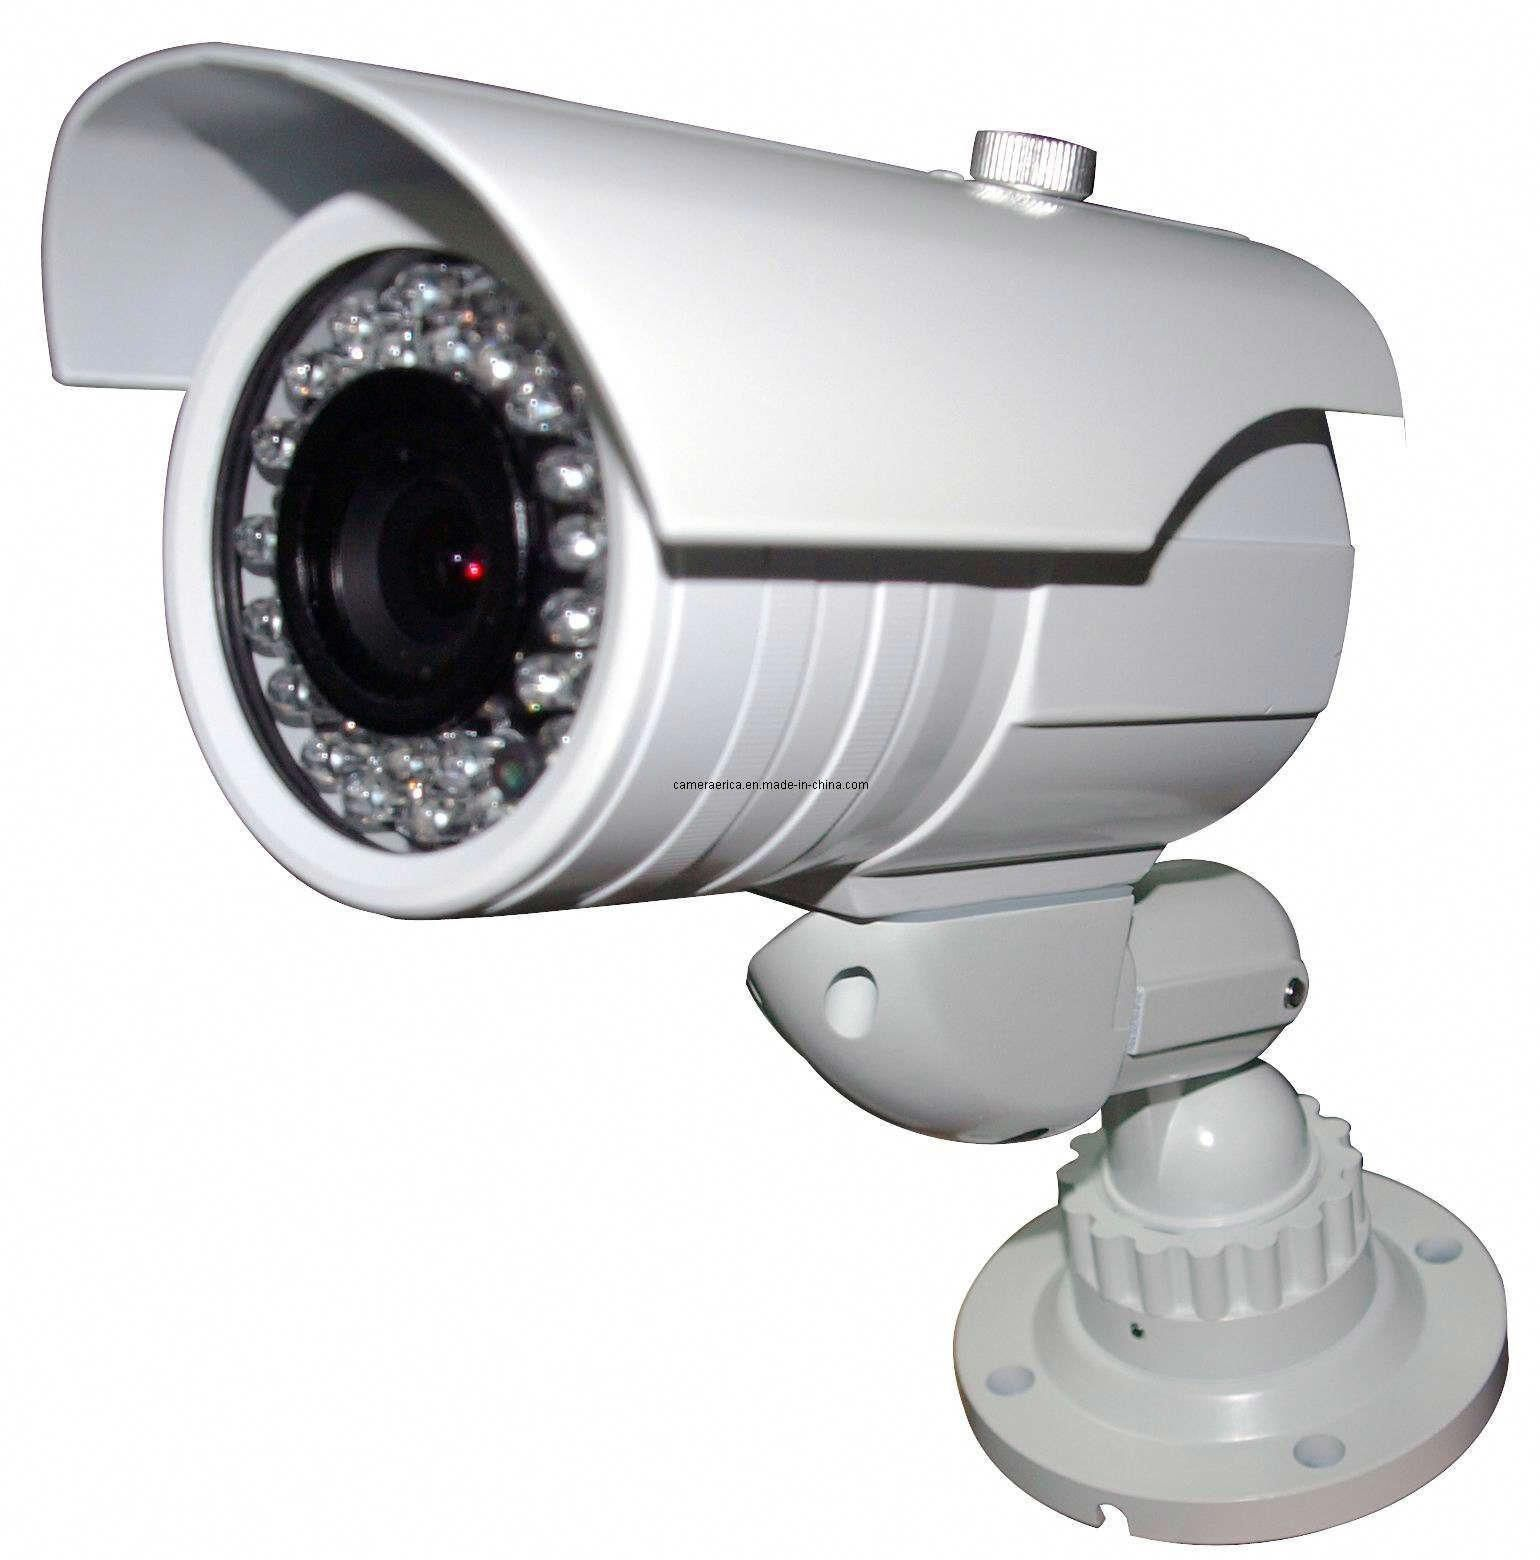 Bush Baby Wifi Outlet Home Security Tips Security Cameras For Home Wireless Home Security Systems